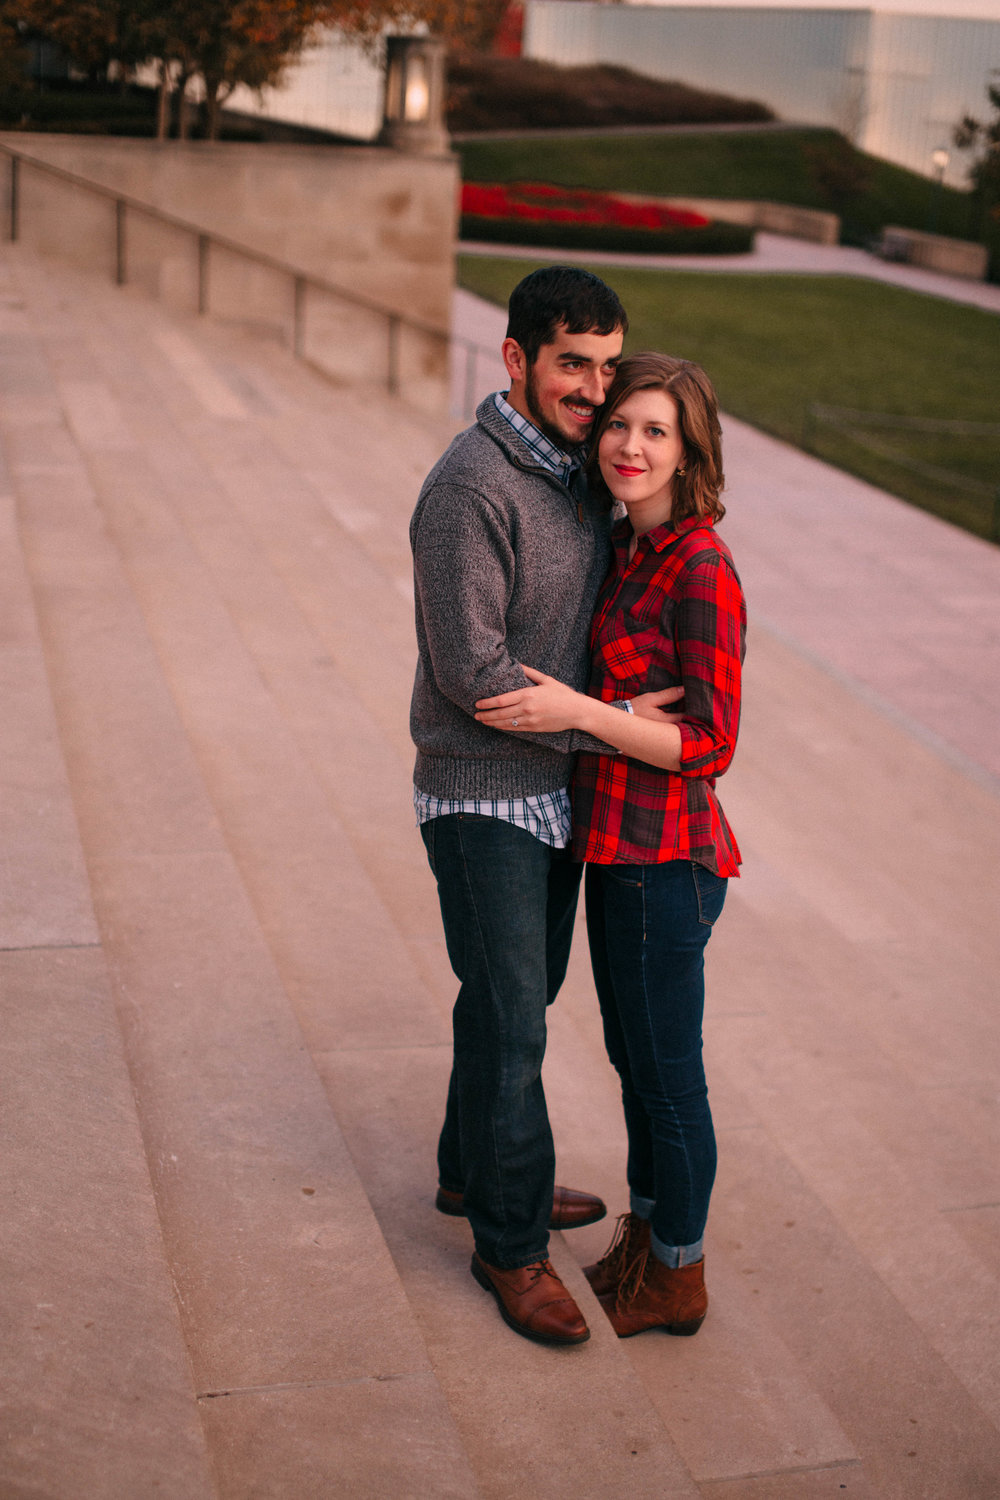 Joseph&Shelbie: Kansas City, MO | Hannahill Photography |Kansas City, MO